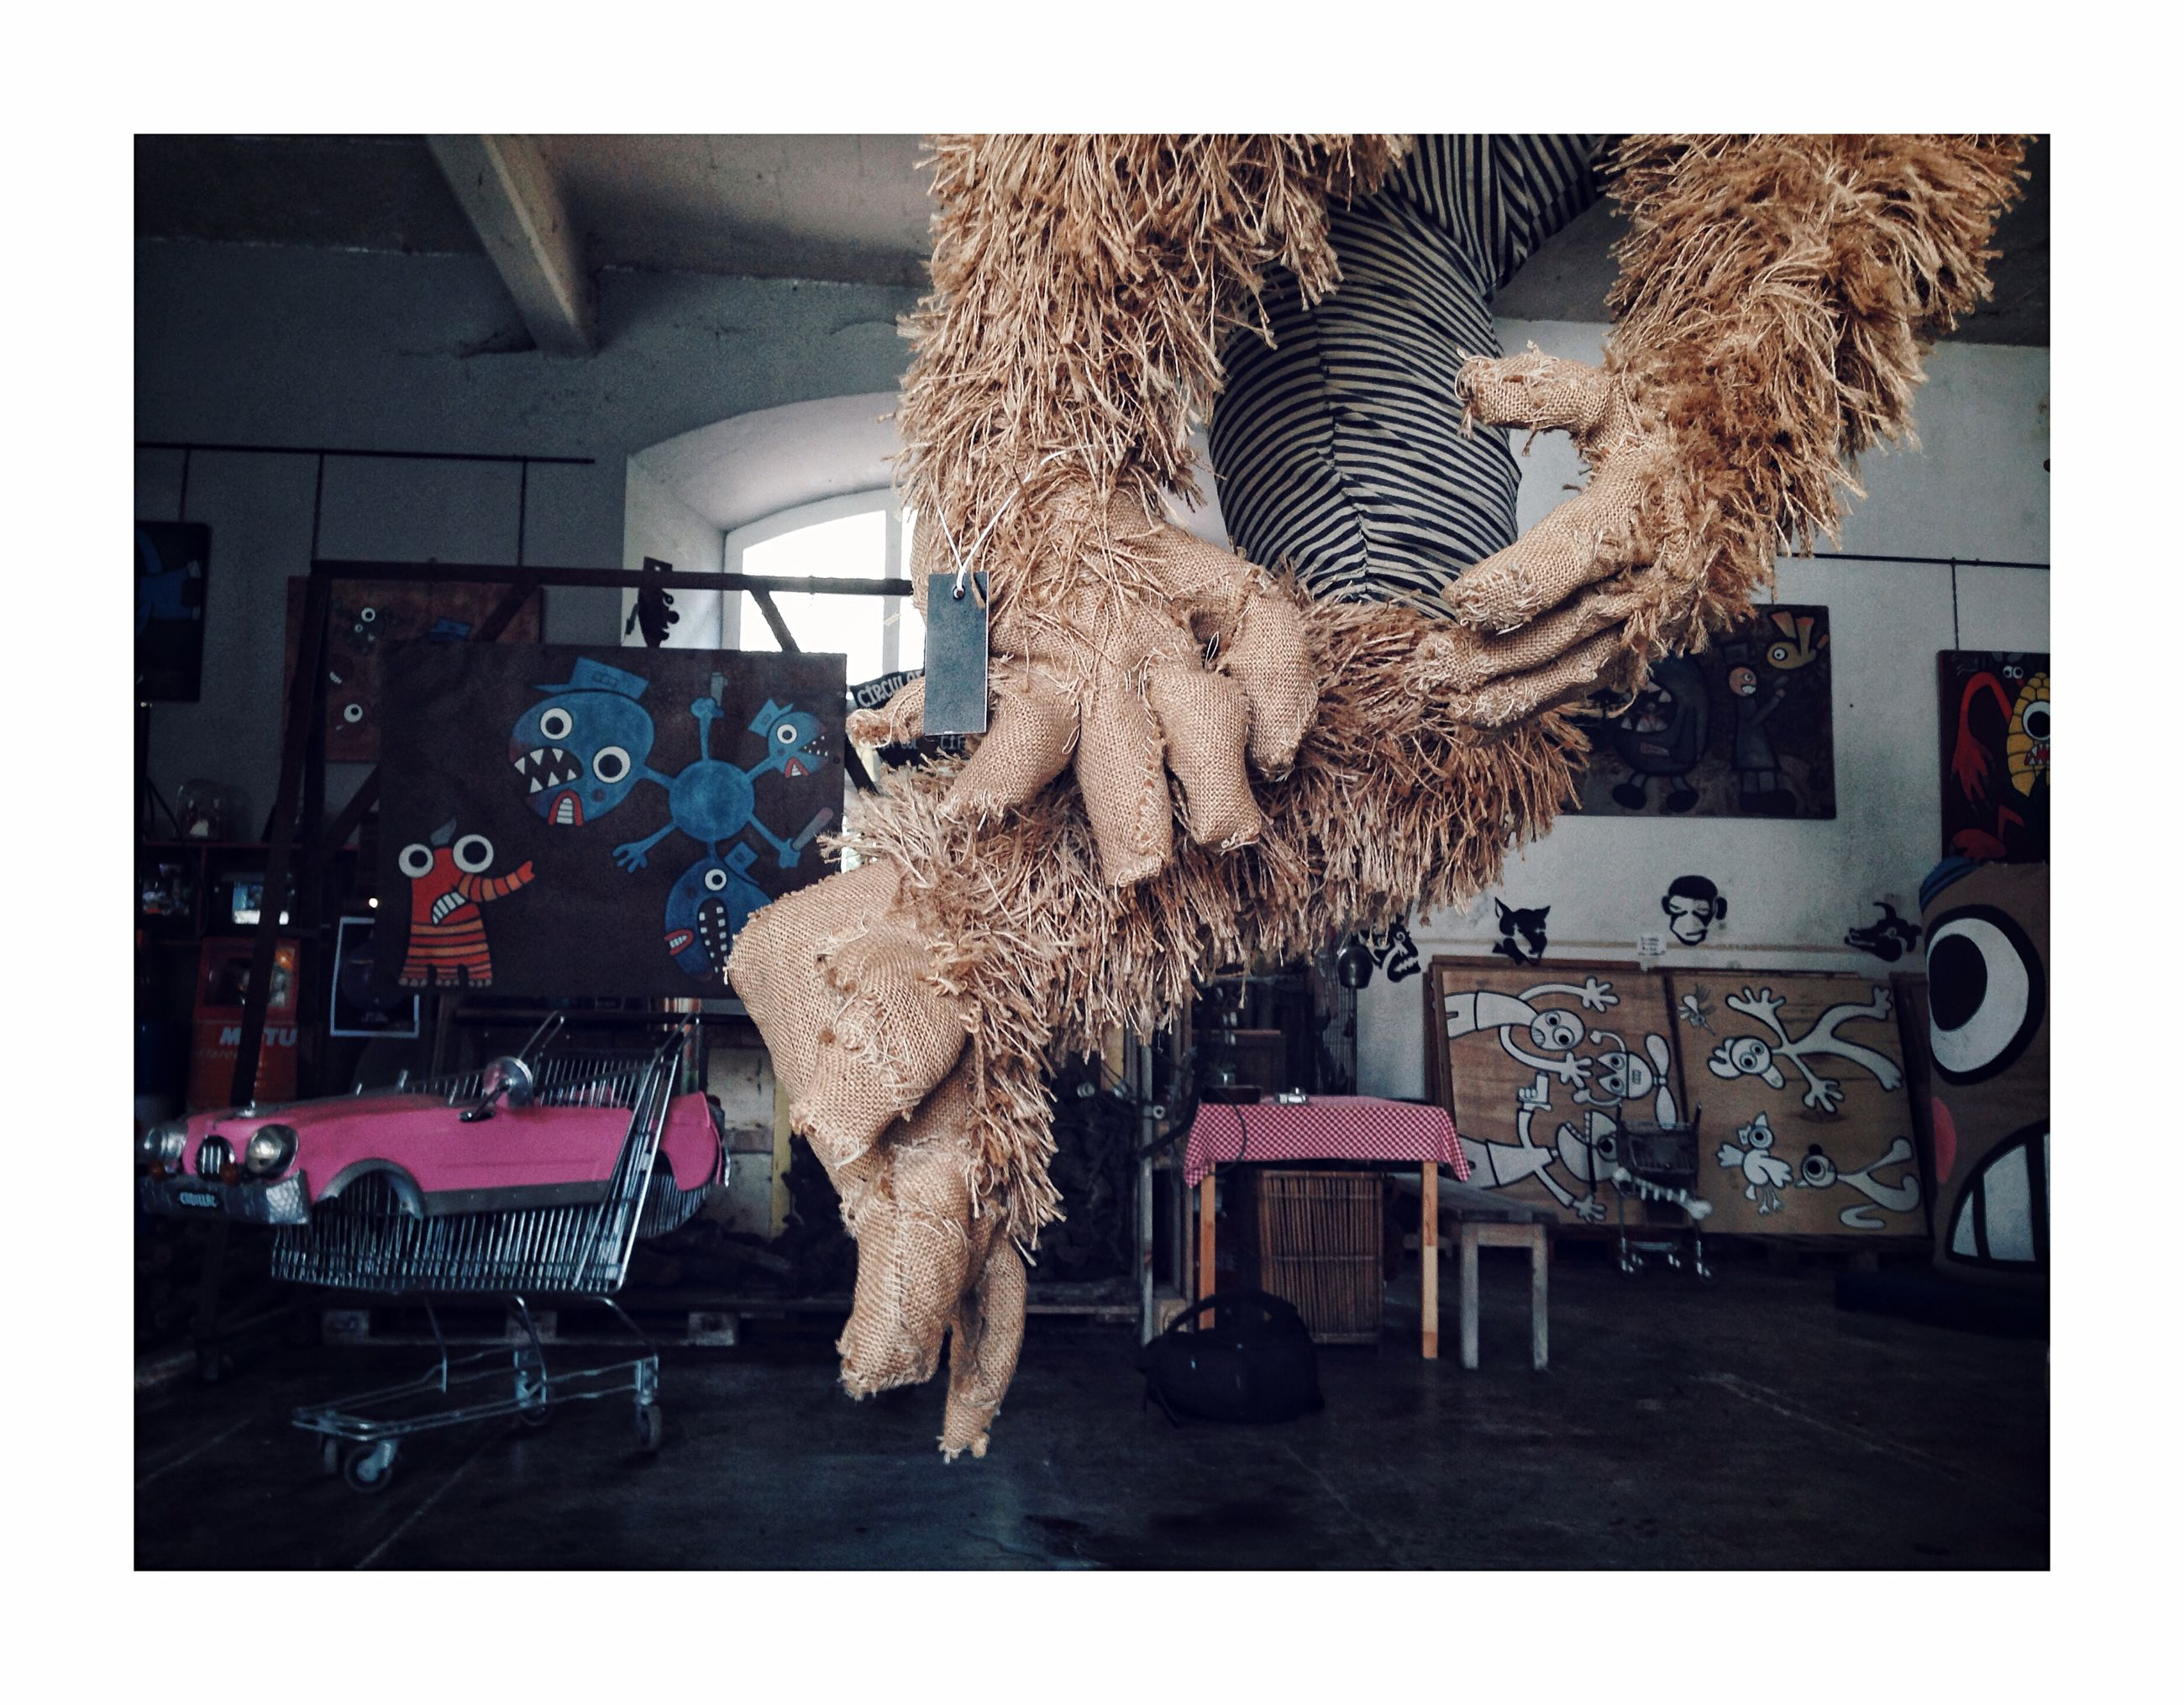 transfer print, indoors, auto post production filter, no people, toy, stuffed toy, animal representation, representation, teddy bear, table, day, domestic room, seat, furniture, chair, architecture, hanging, home, mammal